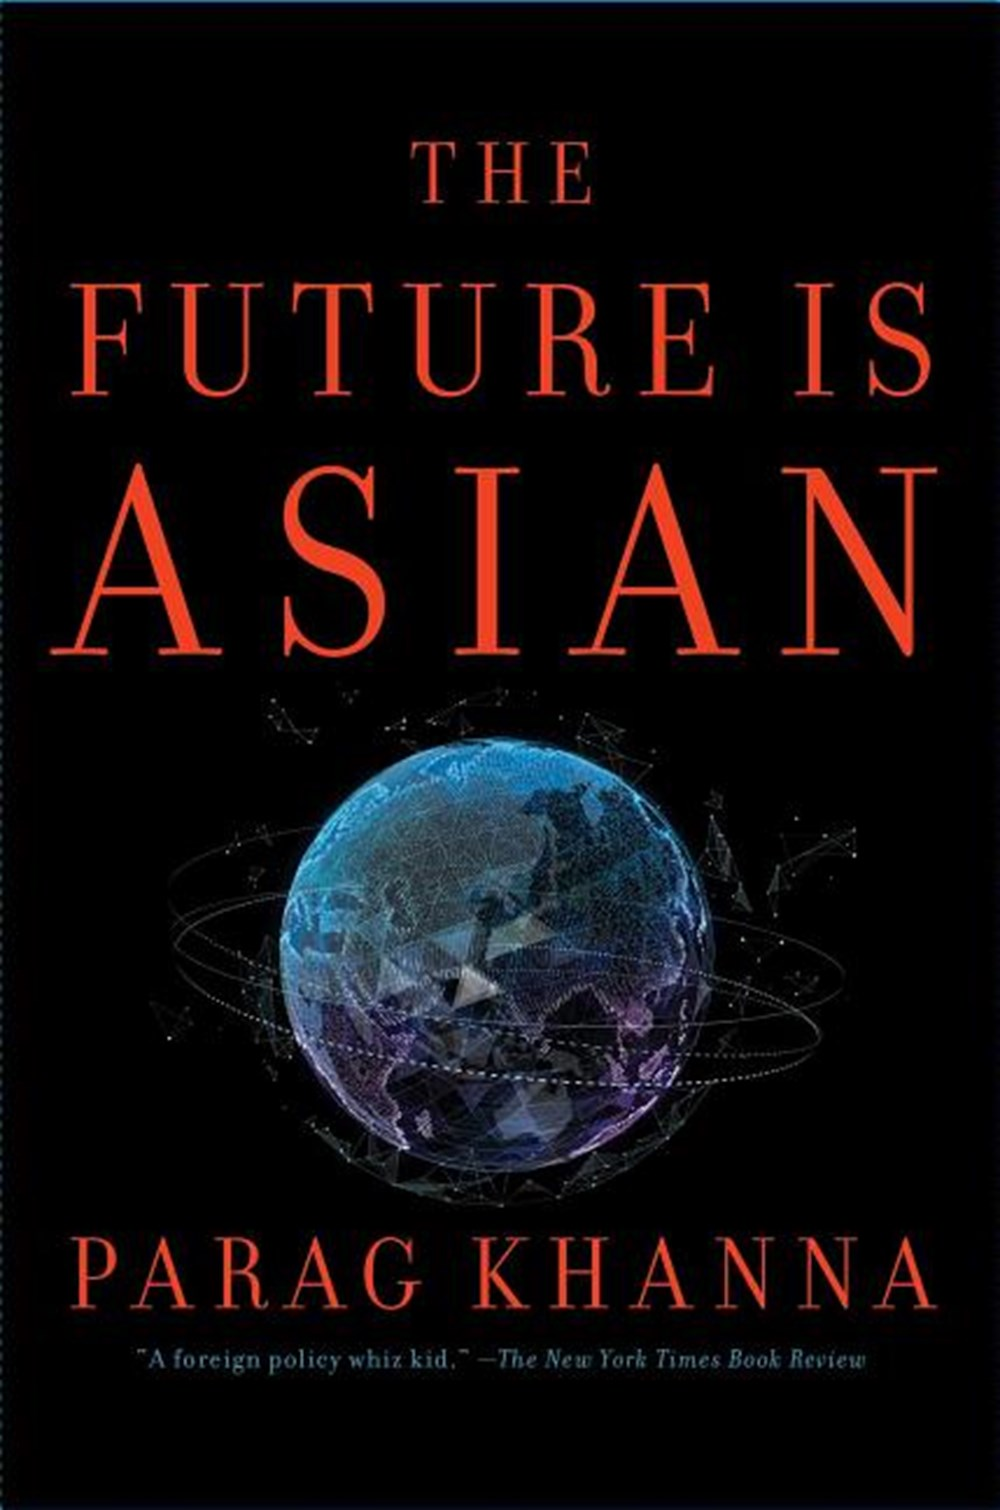 Future Is Asian Commerce, Conflict, and Culture in the 21st Century